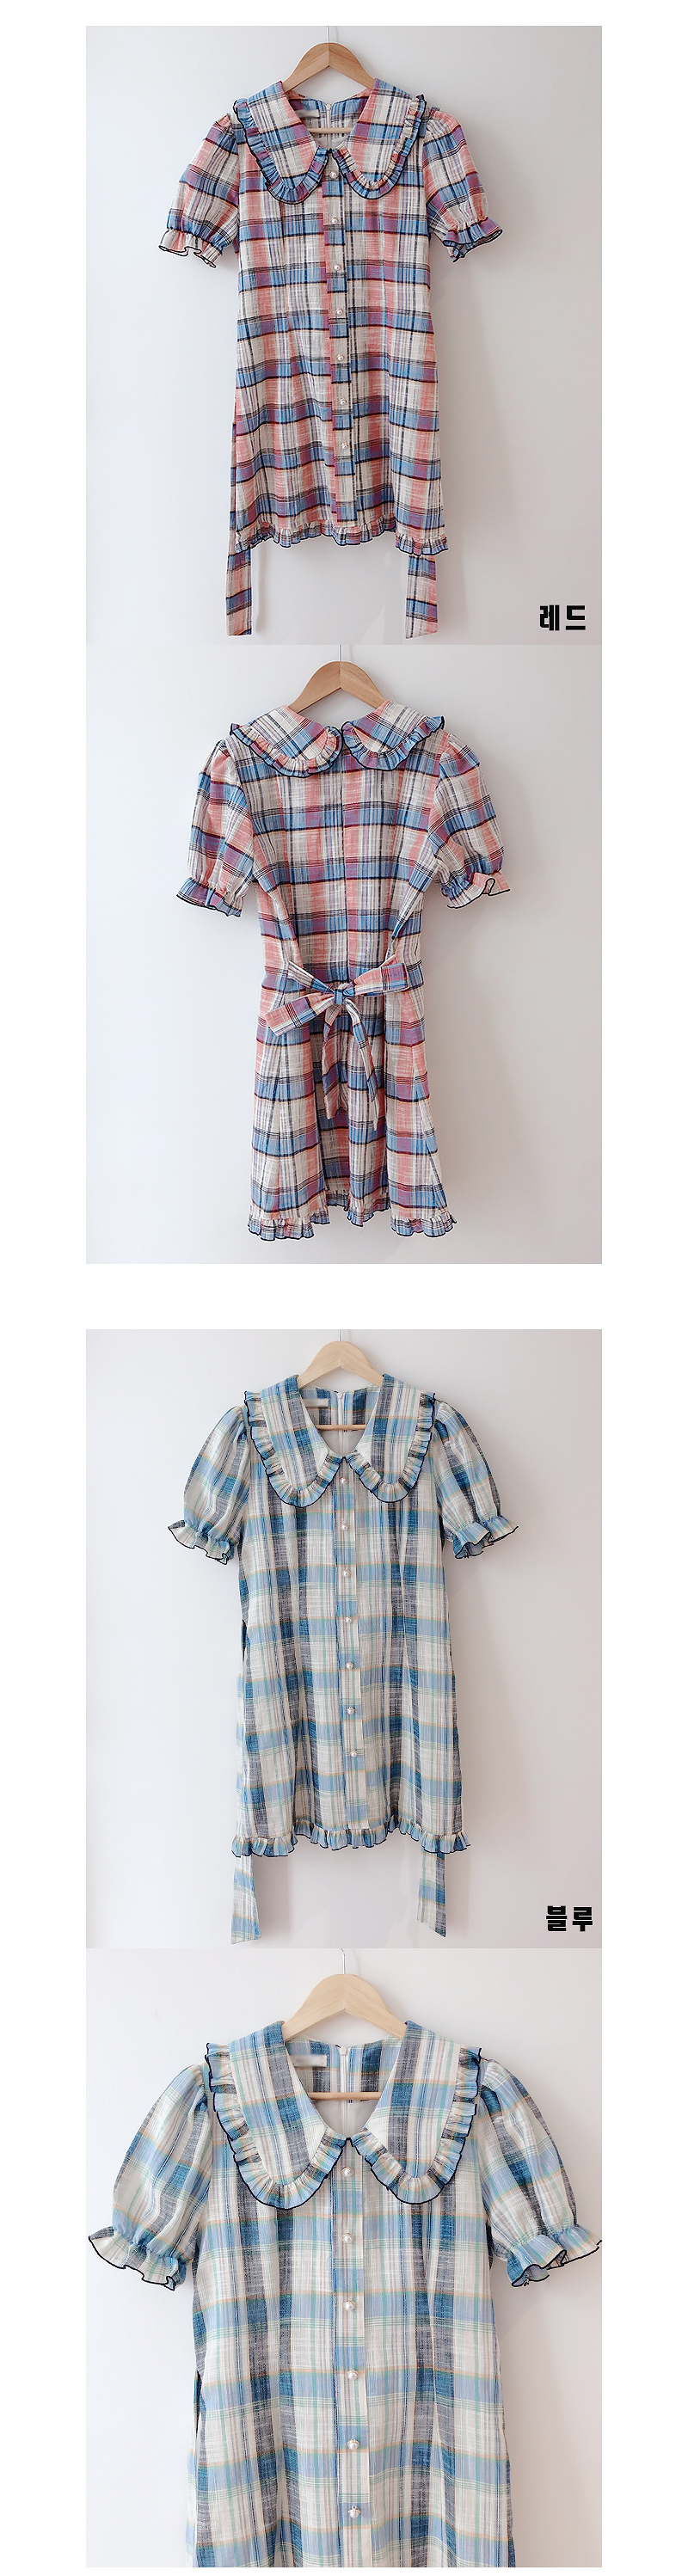 Hershey Check Linen Dress